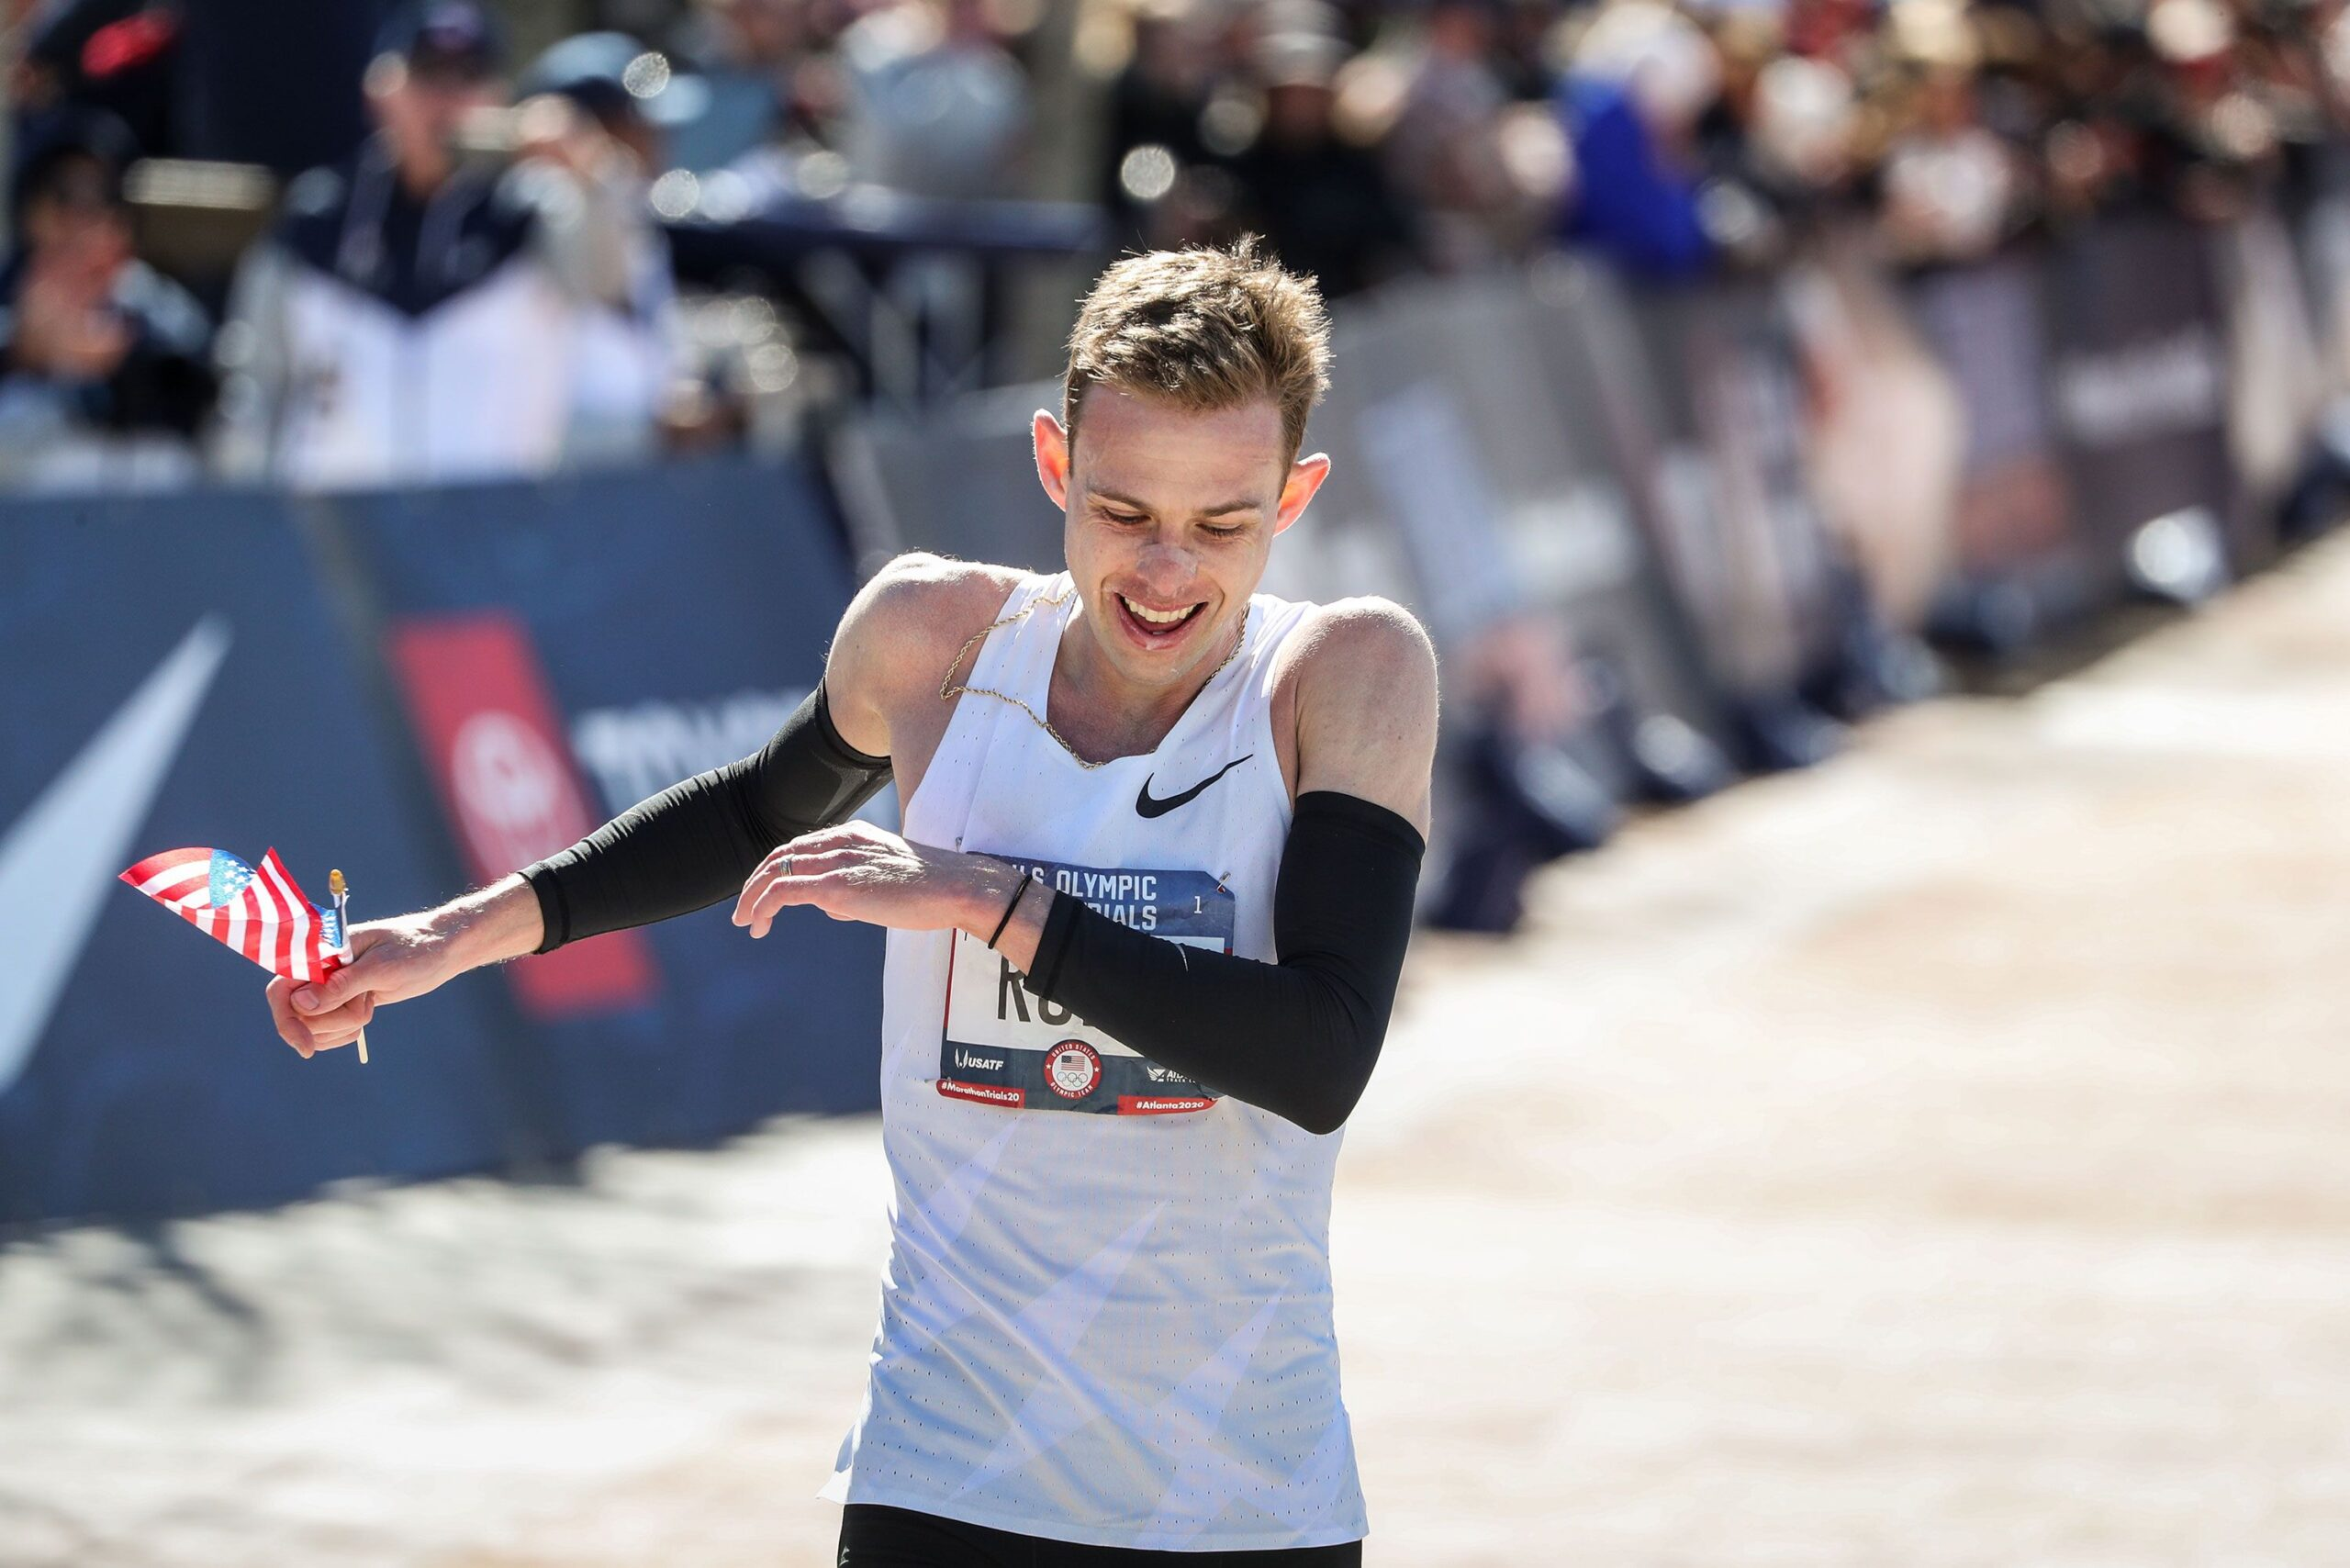 Galen Rupp selected for 2021 Olympics